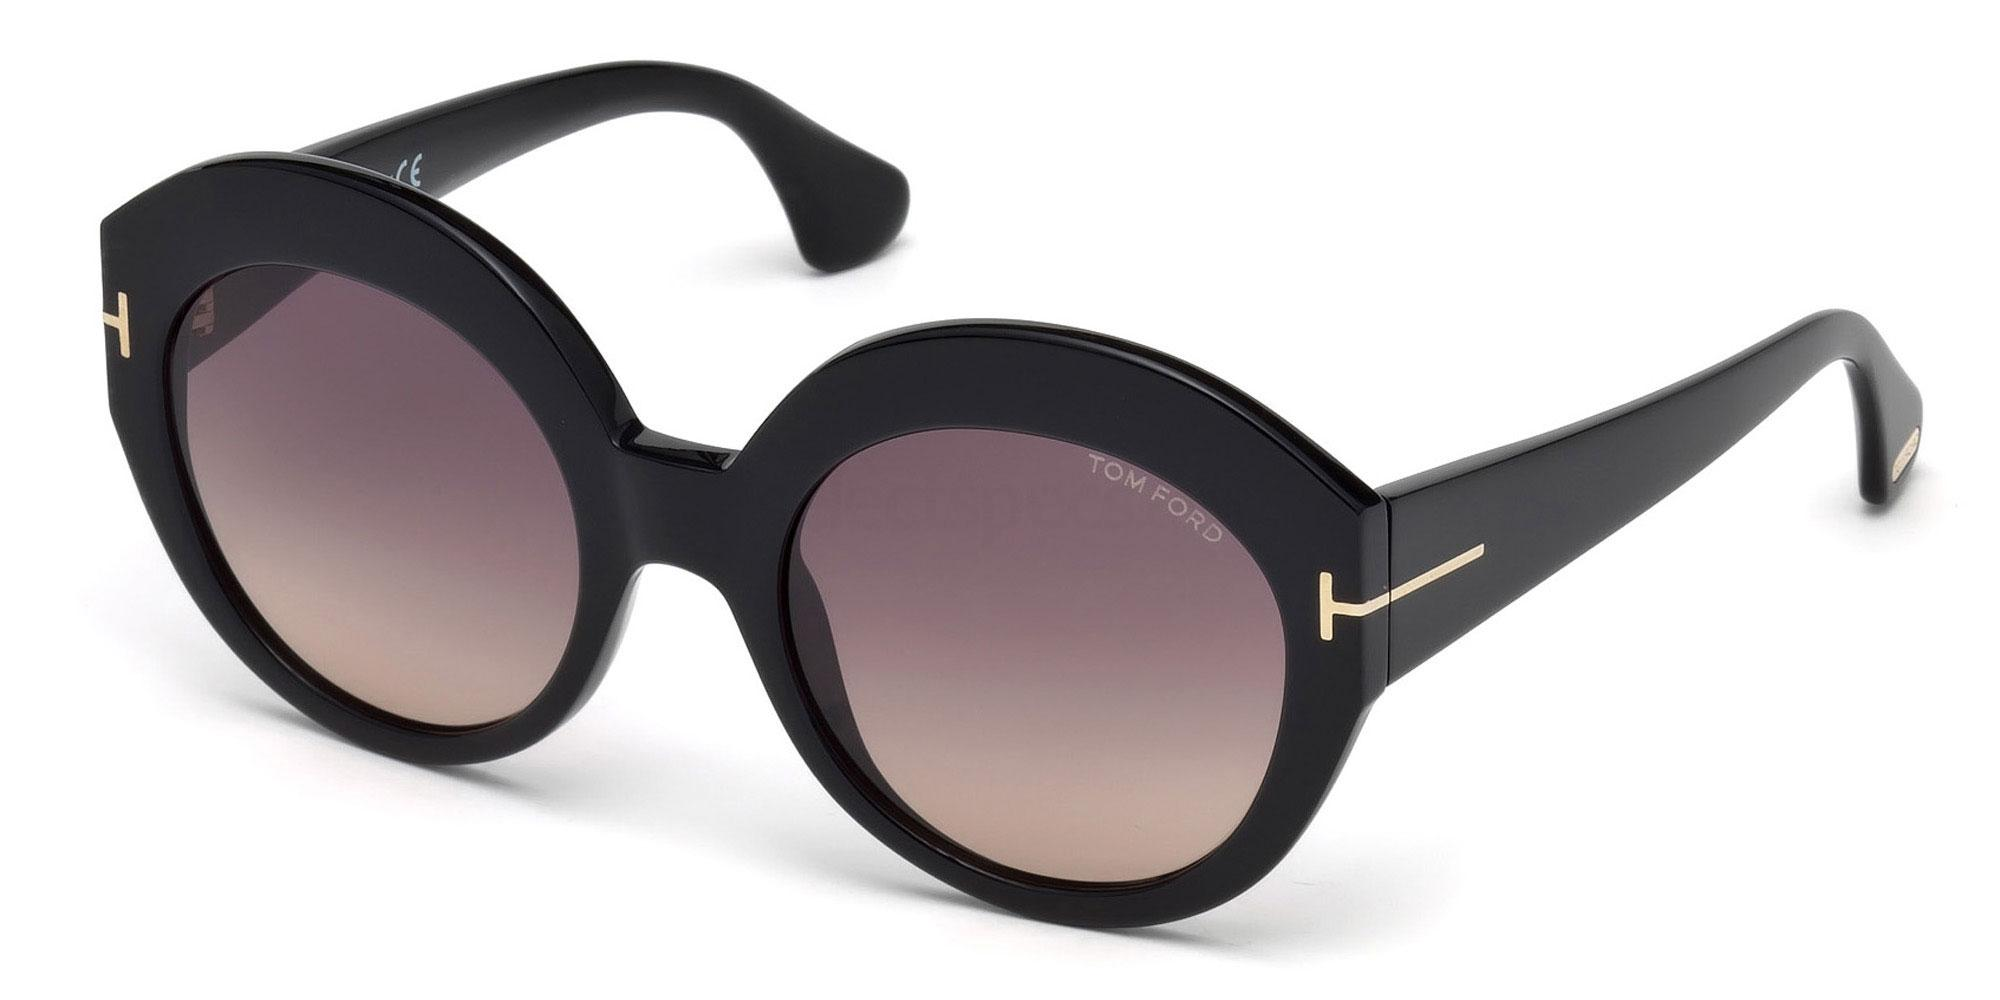 01B FT0533 Sunglasses, Tom Ford